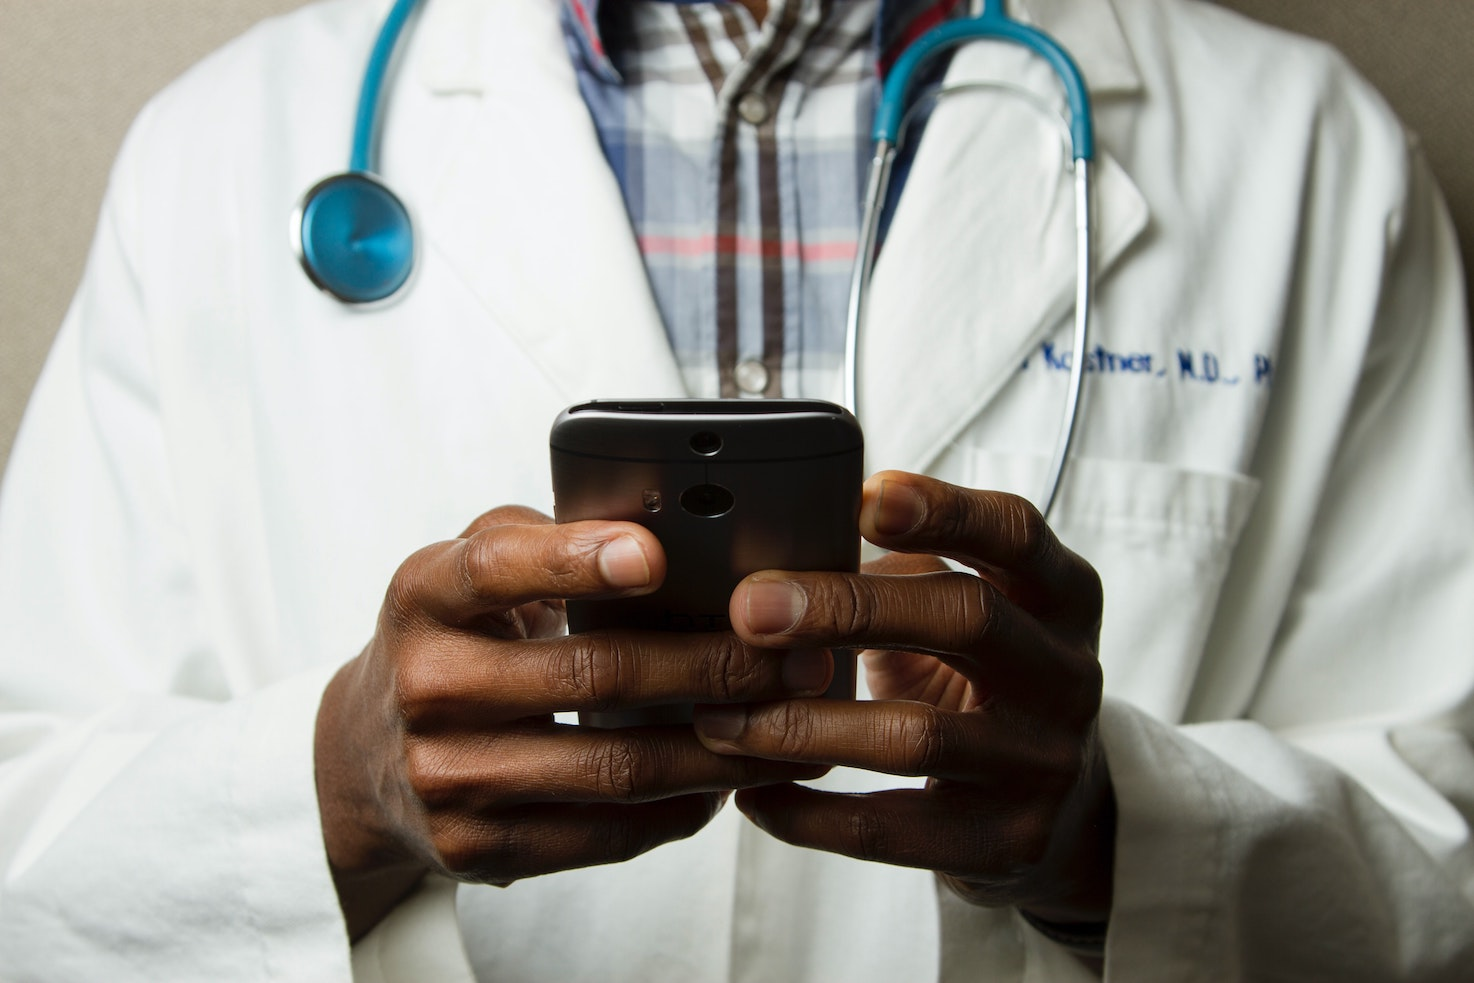 doctor providing telemedicine service with his phone